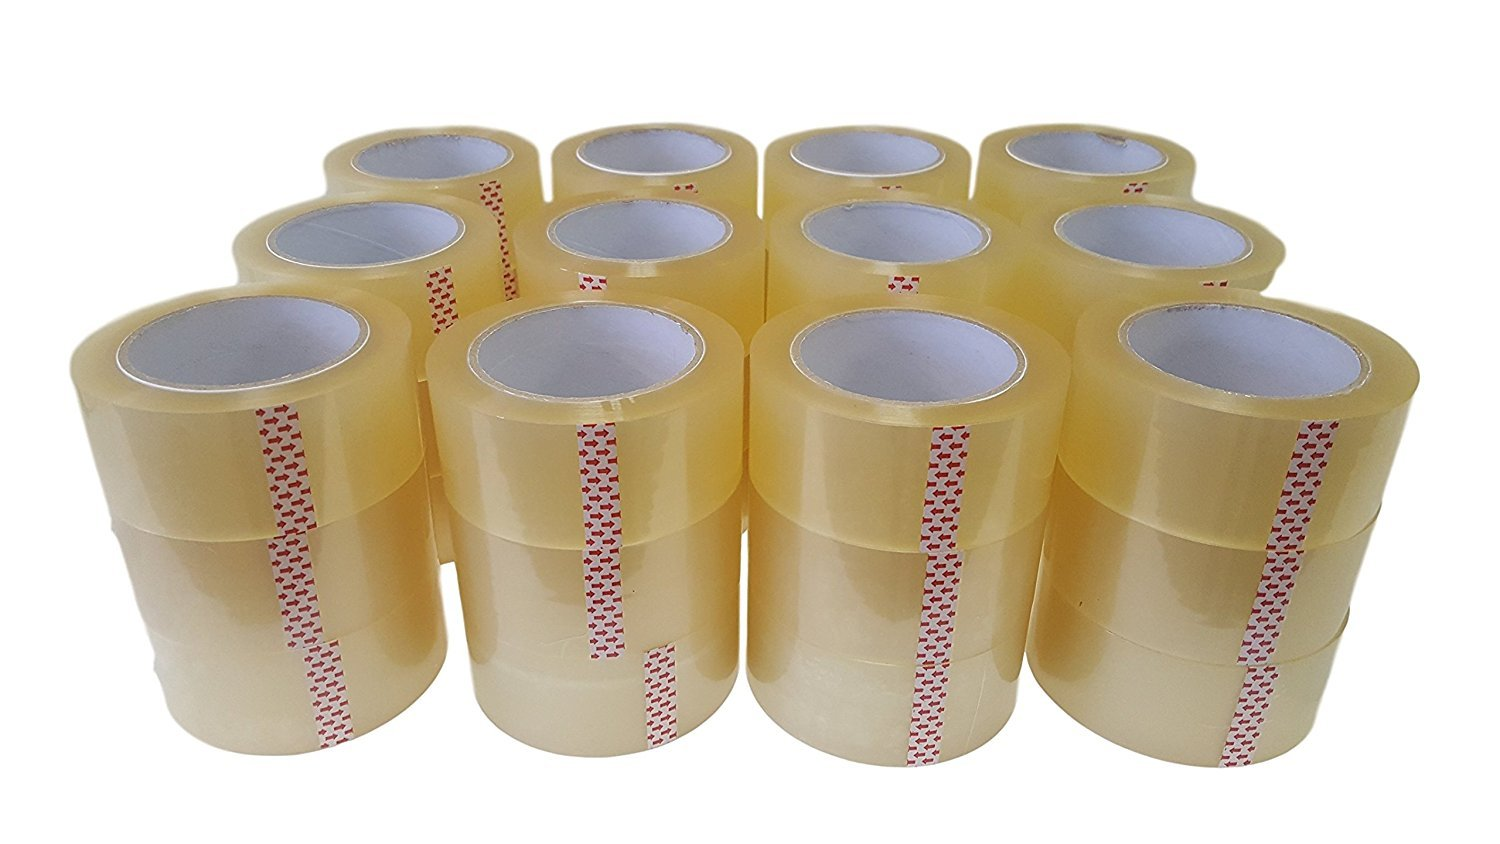 Empire Mailers - 6 Rolls - 55 Yards Per Roll (165 feet) 2 Inch Wide 2.0 MIL Extra Heavy Duty Shipping & Packing Tape Moving & Adhesive Carton Sealing - Strong Clear Industrial Grade